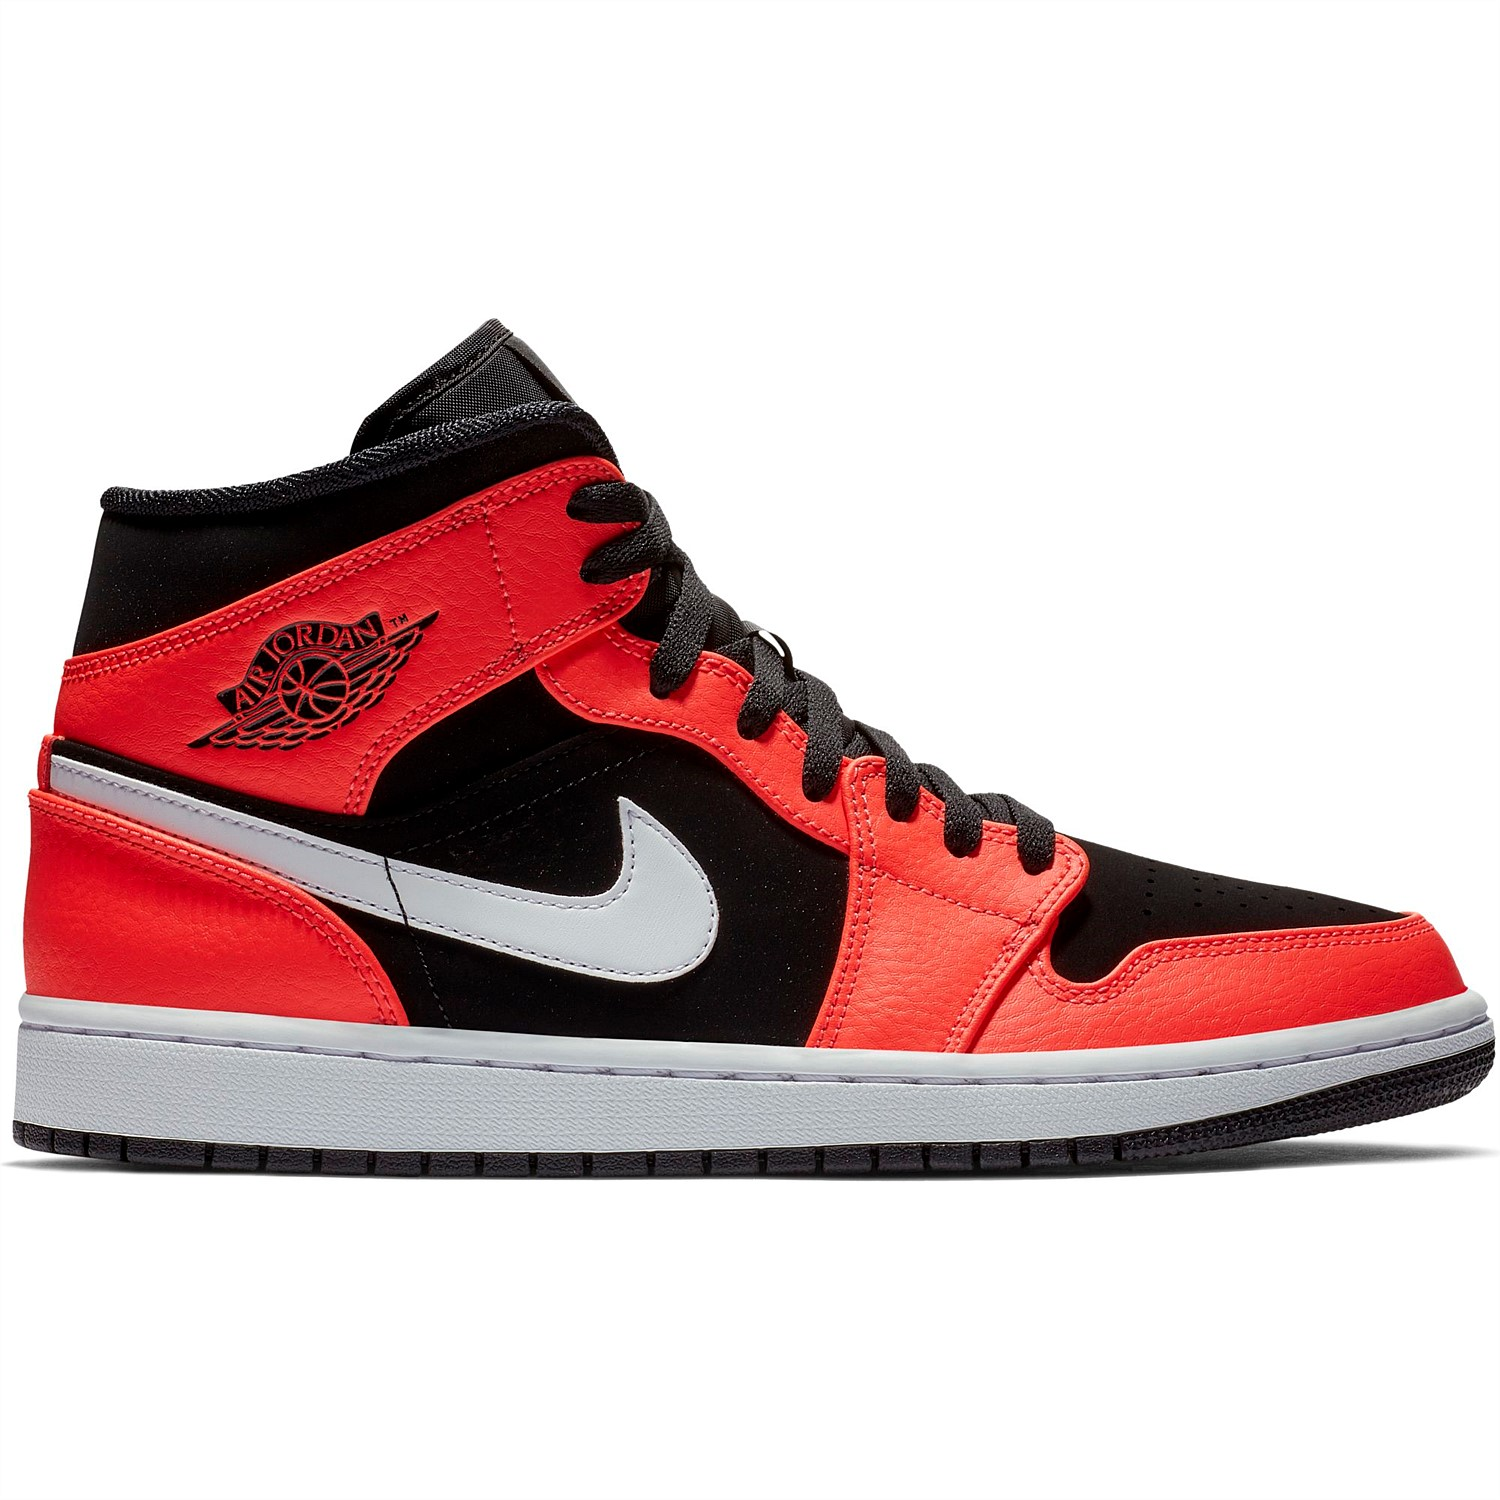 reputable site 95728 8bcf0 Air Jordan 1 Mid Mens